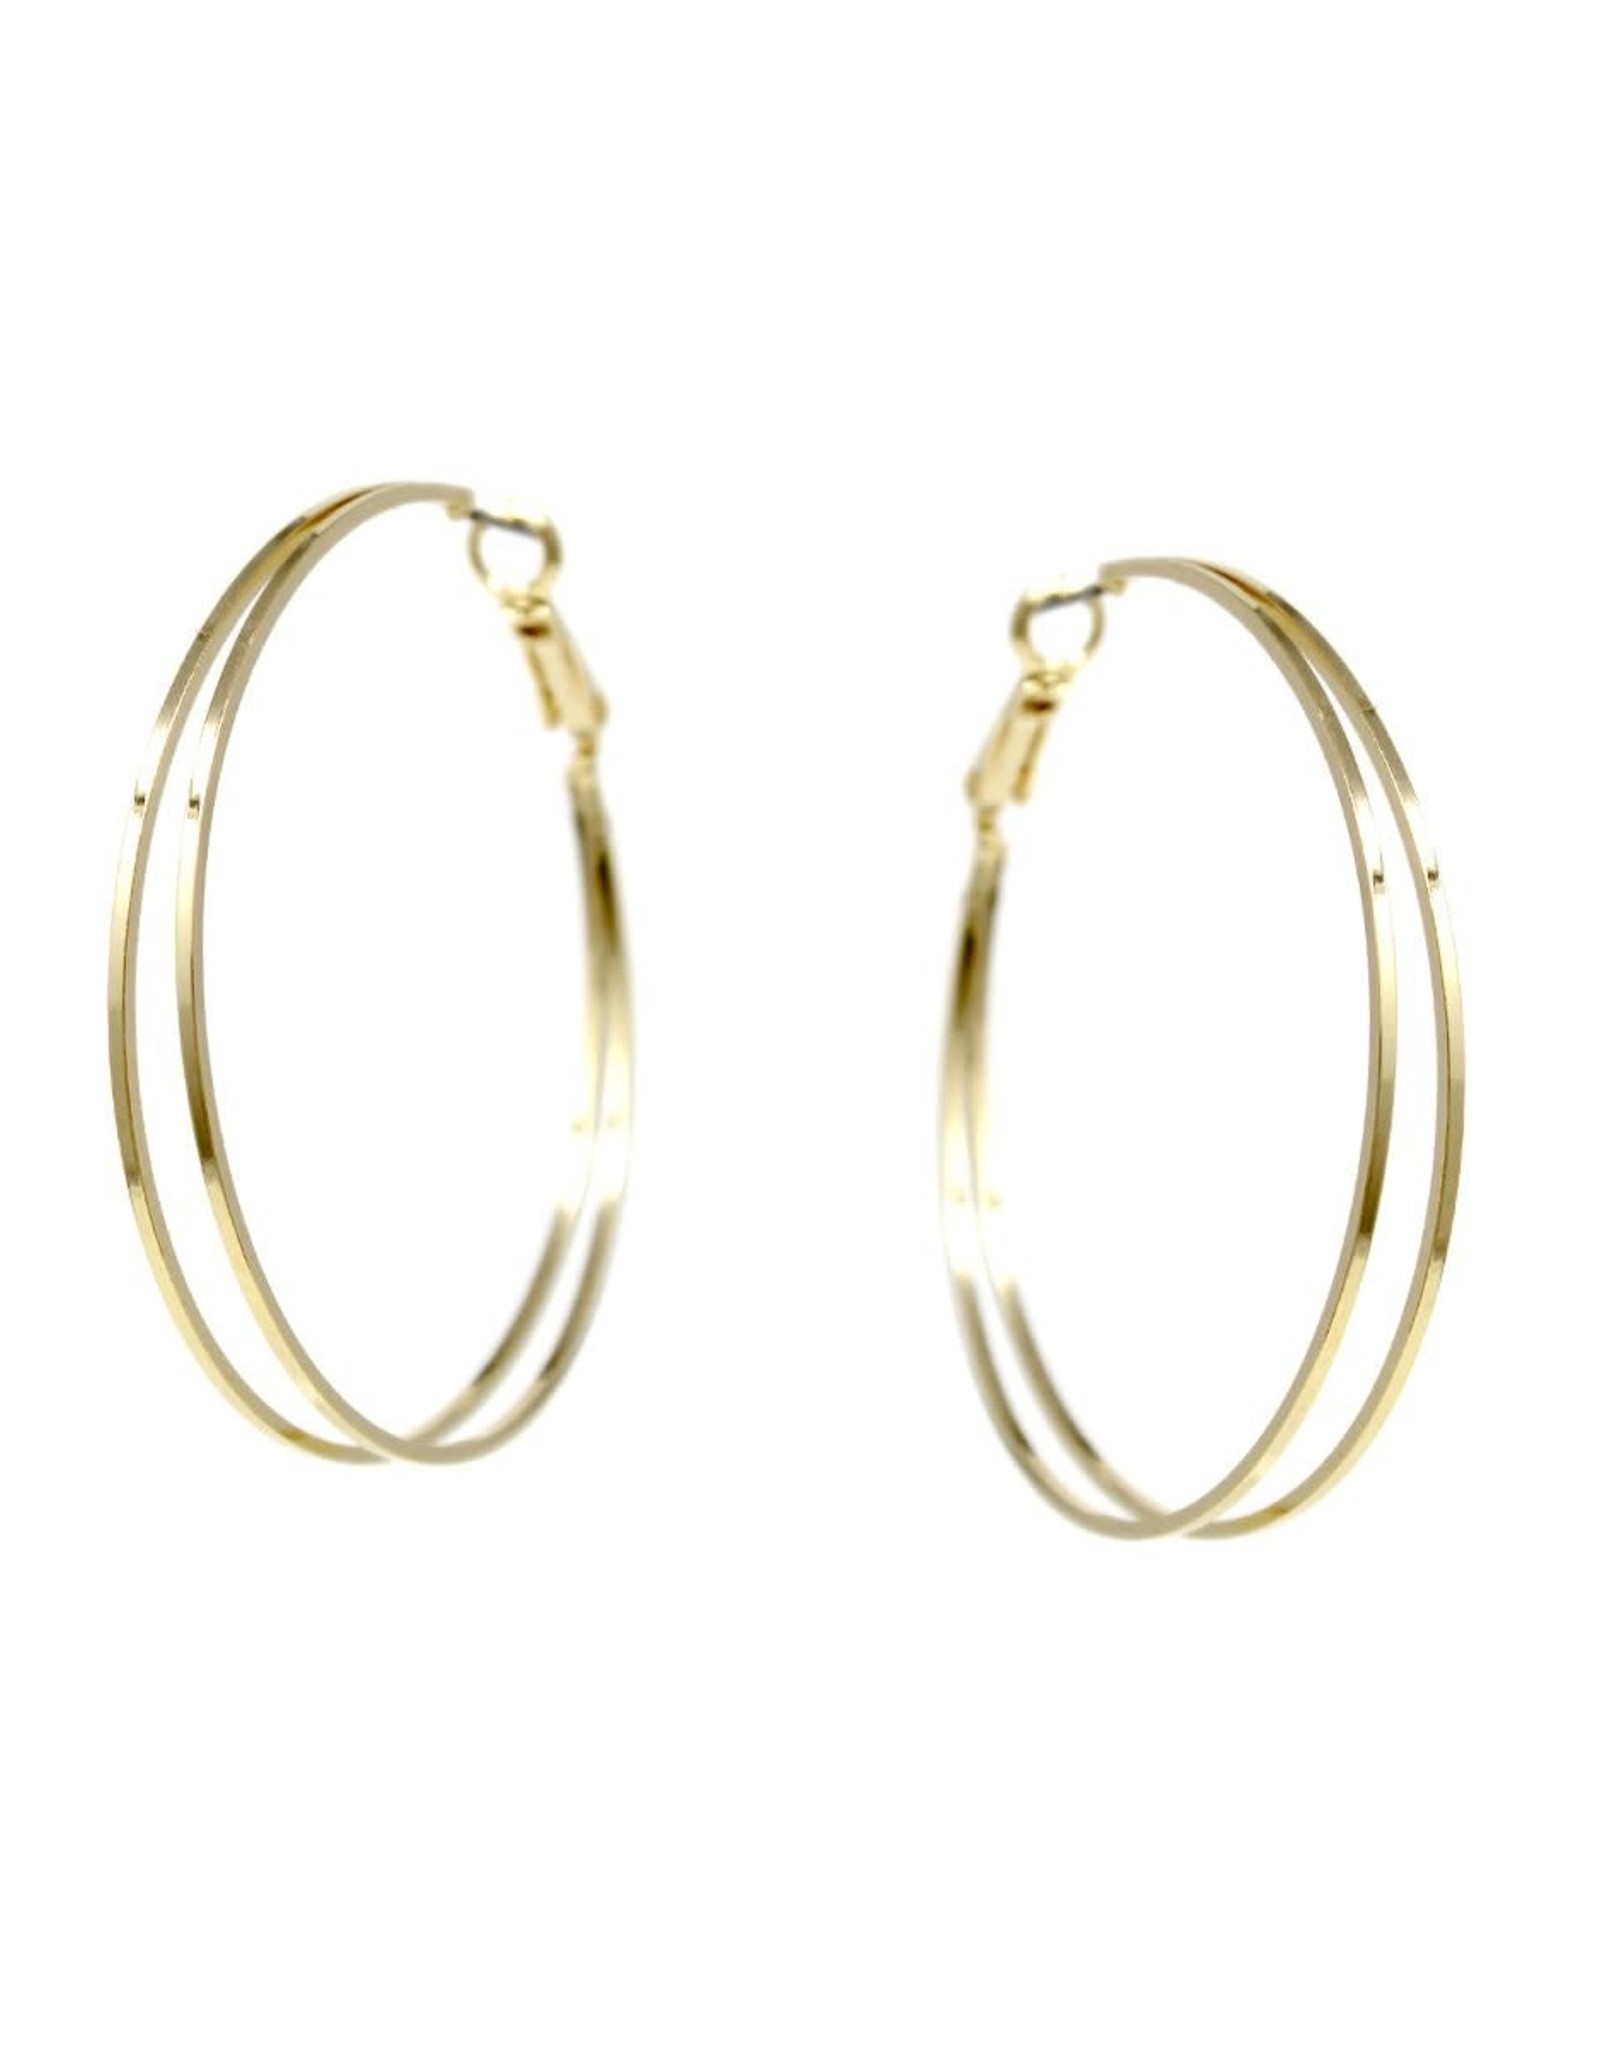 Square Edge Double Layered Hoop Earrings 50mm - Gold